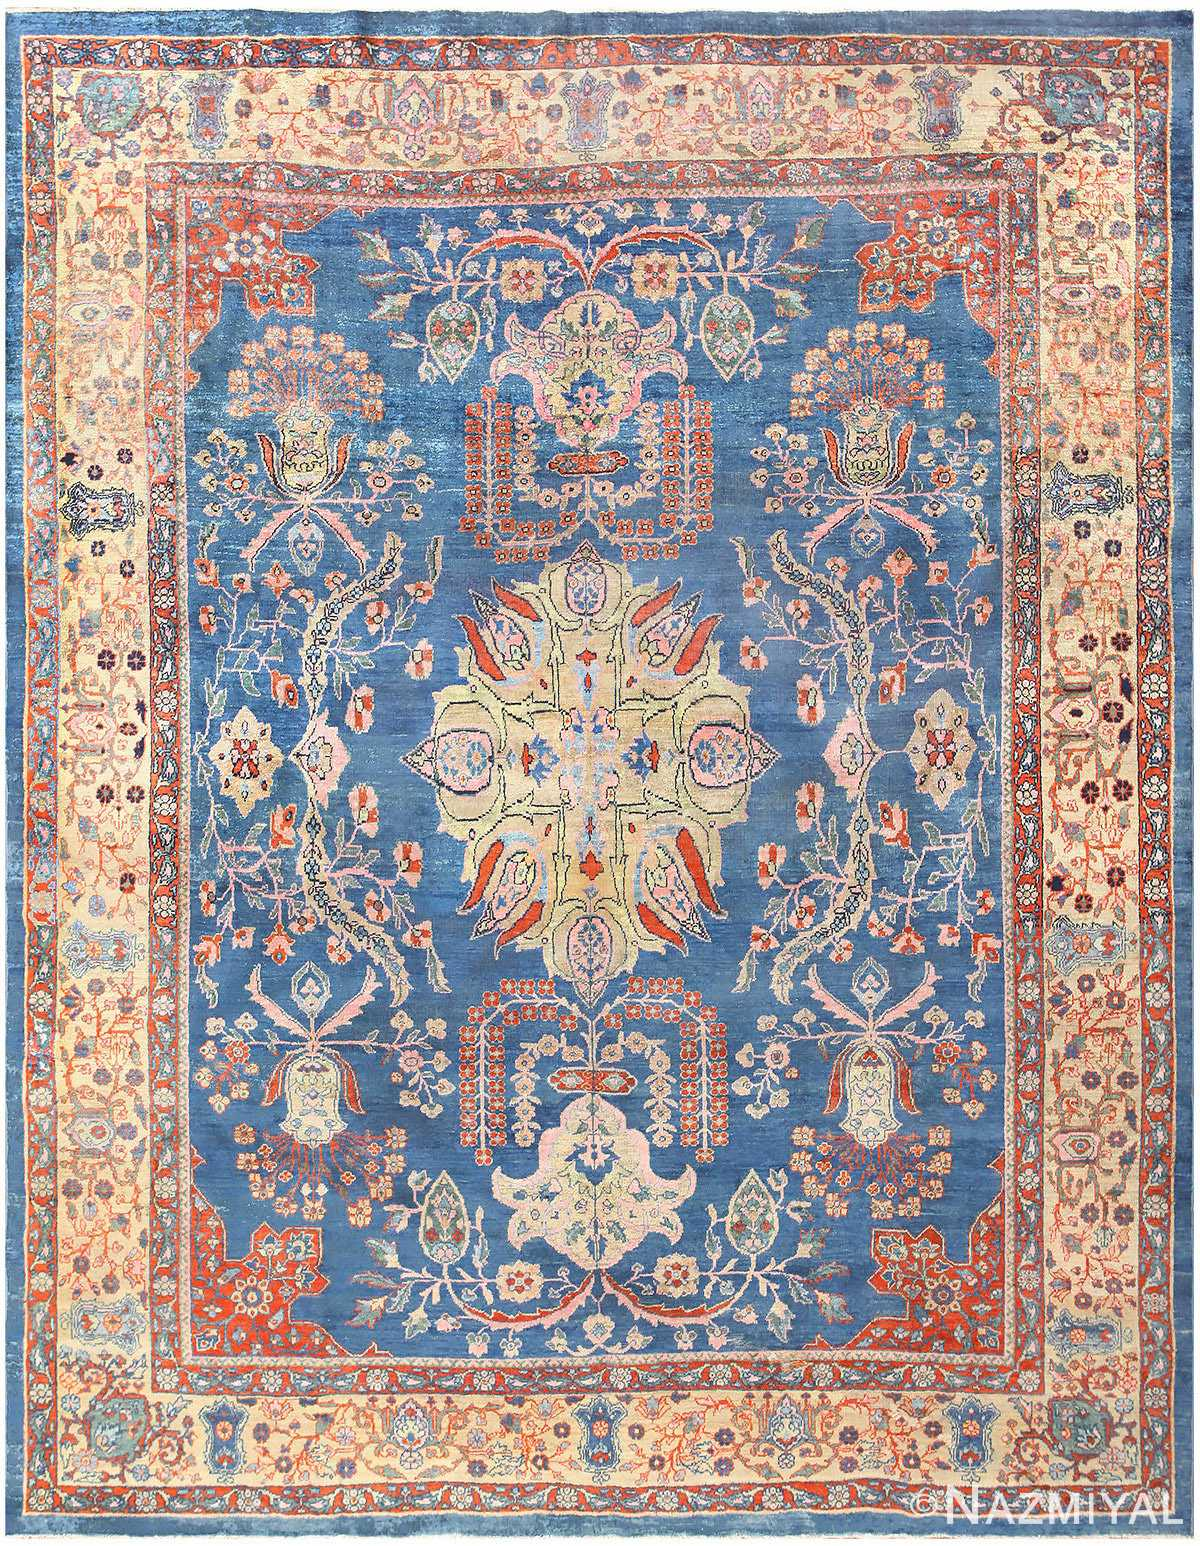 Orange and Blue Antique Persian Farahan Rug 48725 Nazmiyal